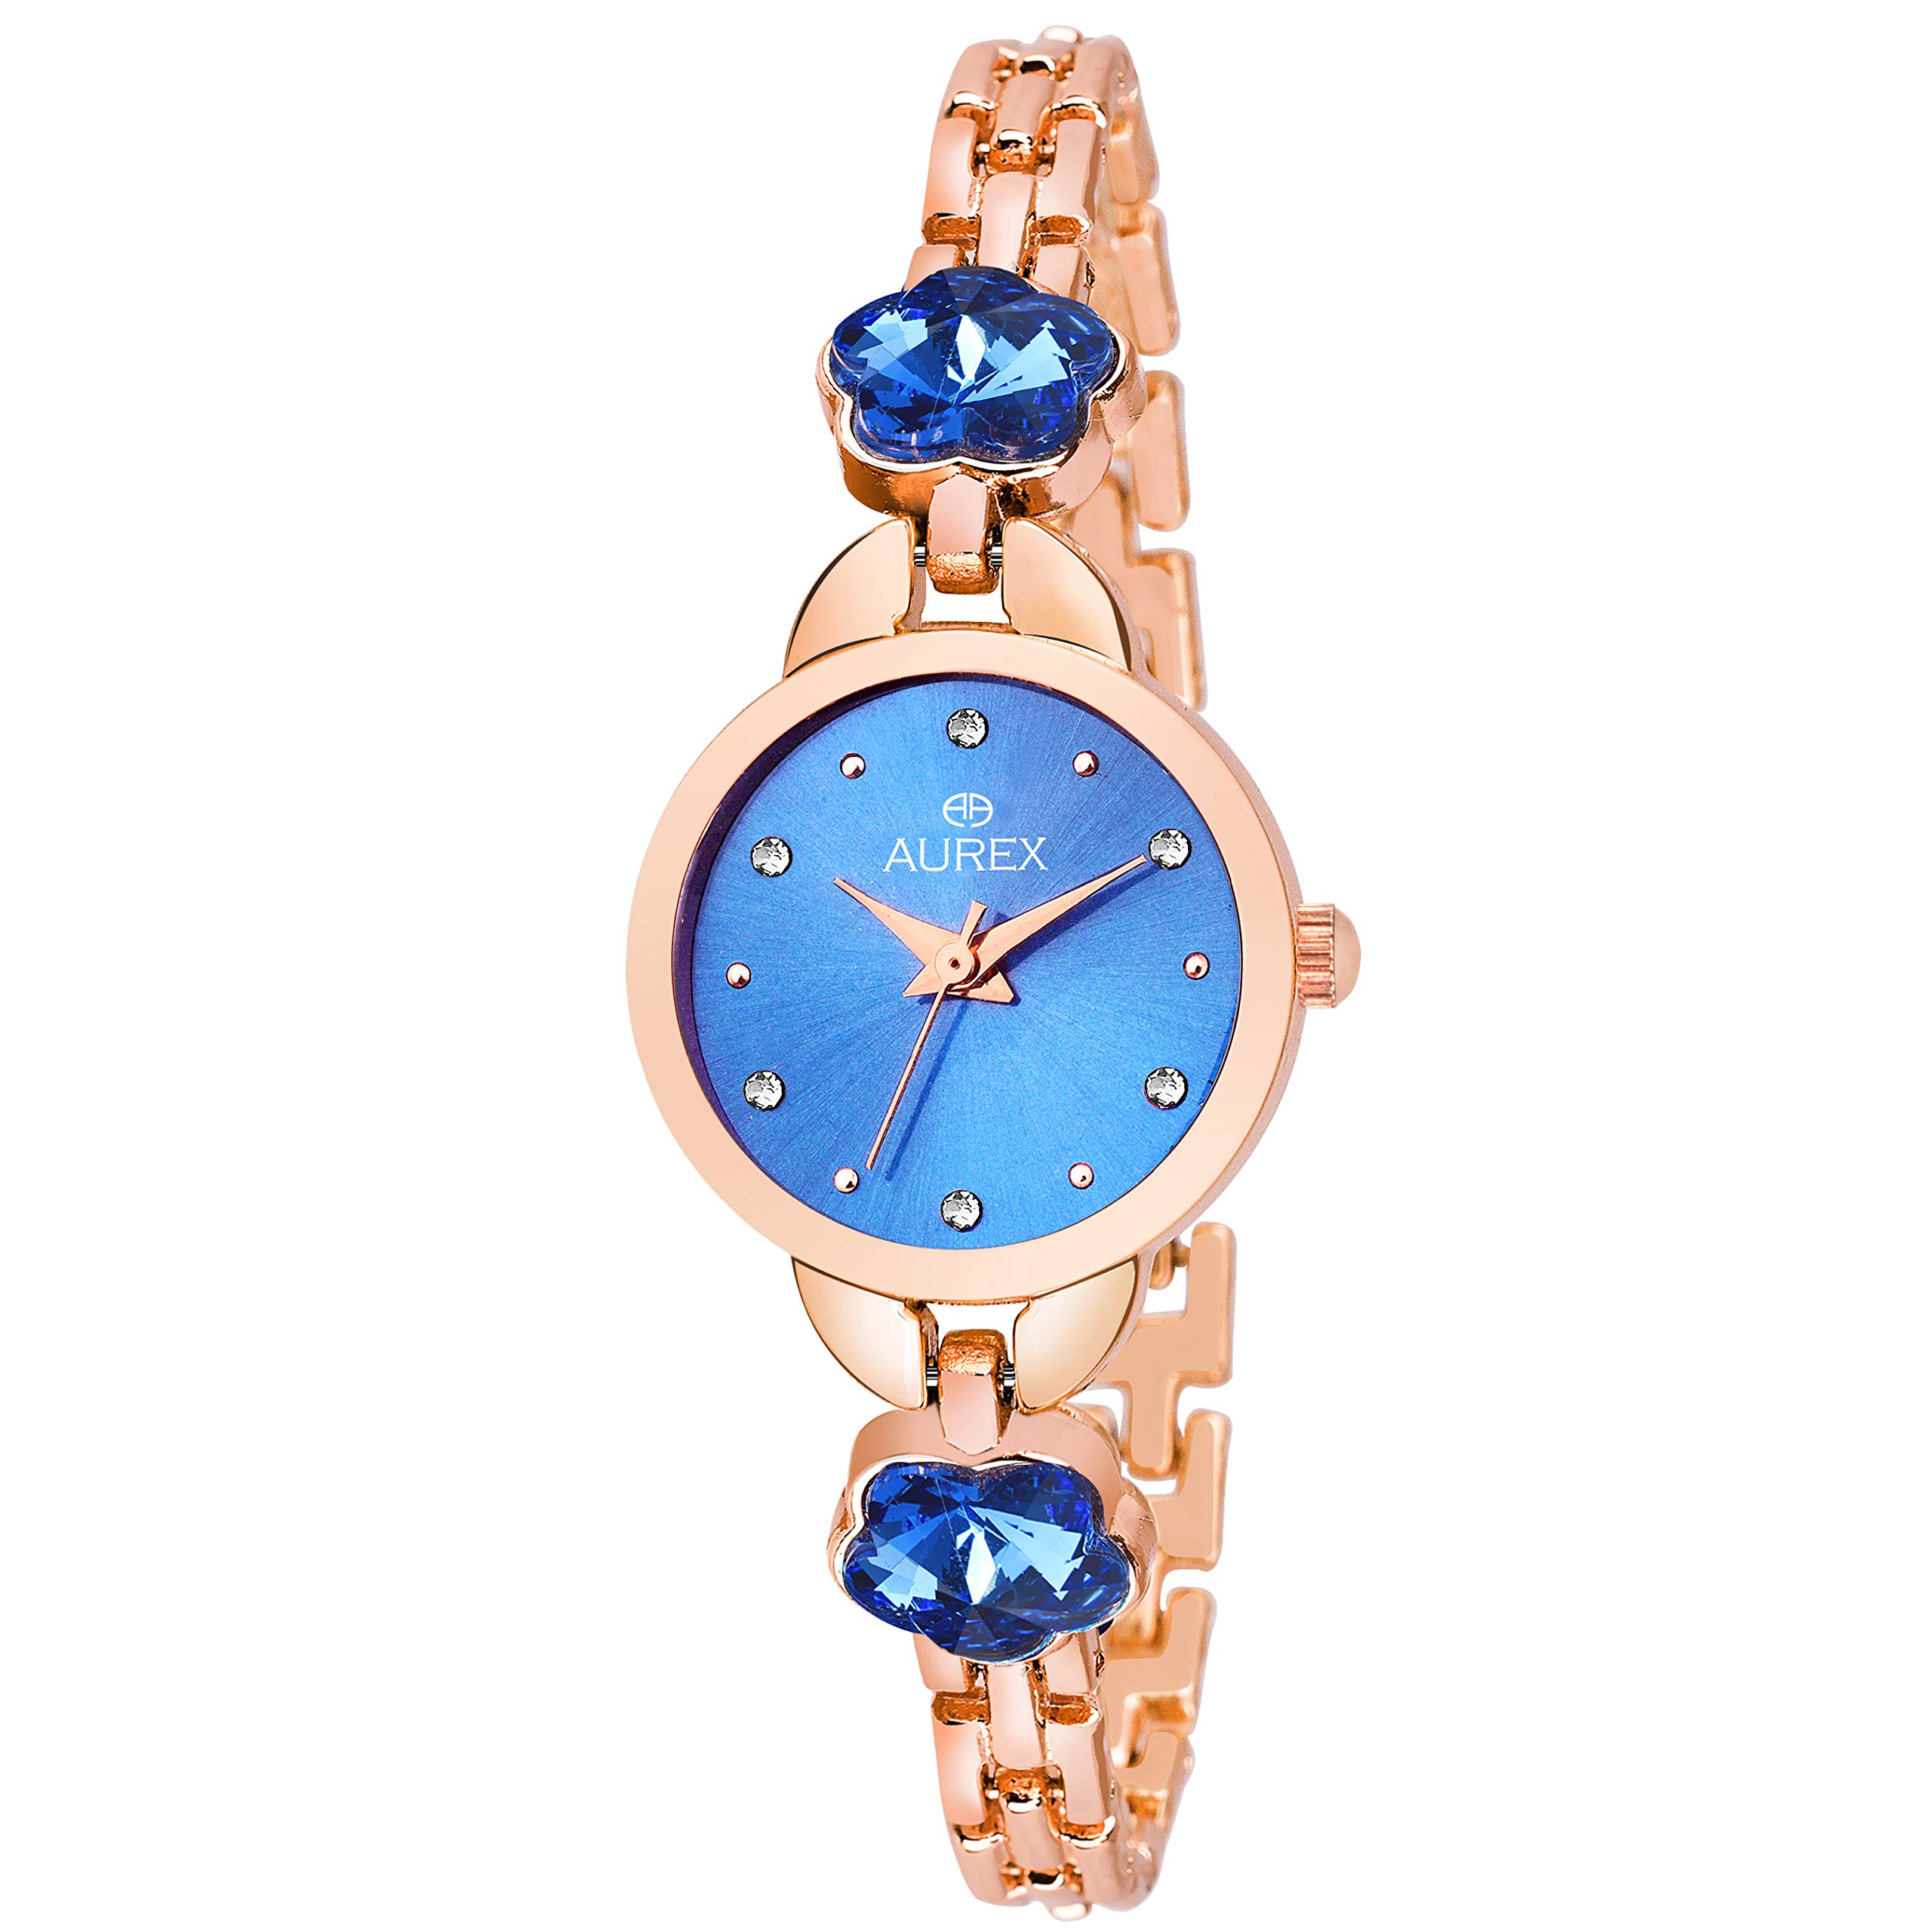 Aurex Analouge Blue Dial Watch Water Resistant Rose Gold Color Strap Wrist Watch for Women/Ladies/Girls (AX-LR537-BLCP) (B07H6D67HX) Amazon Price History, Amazon Price Tracker